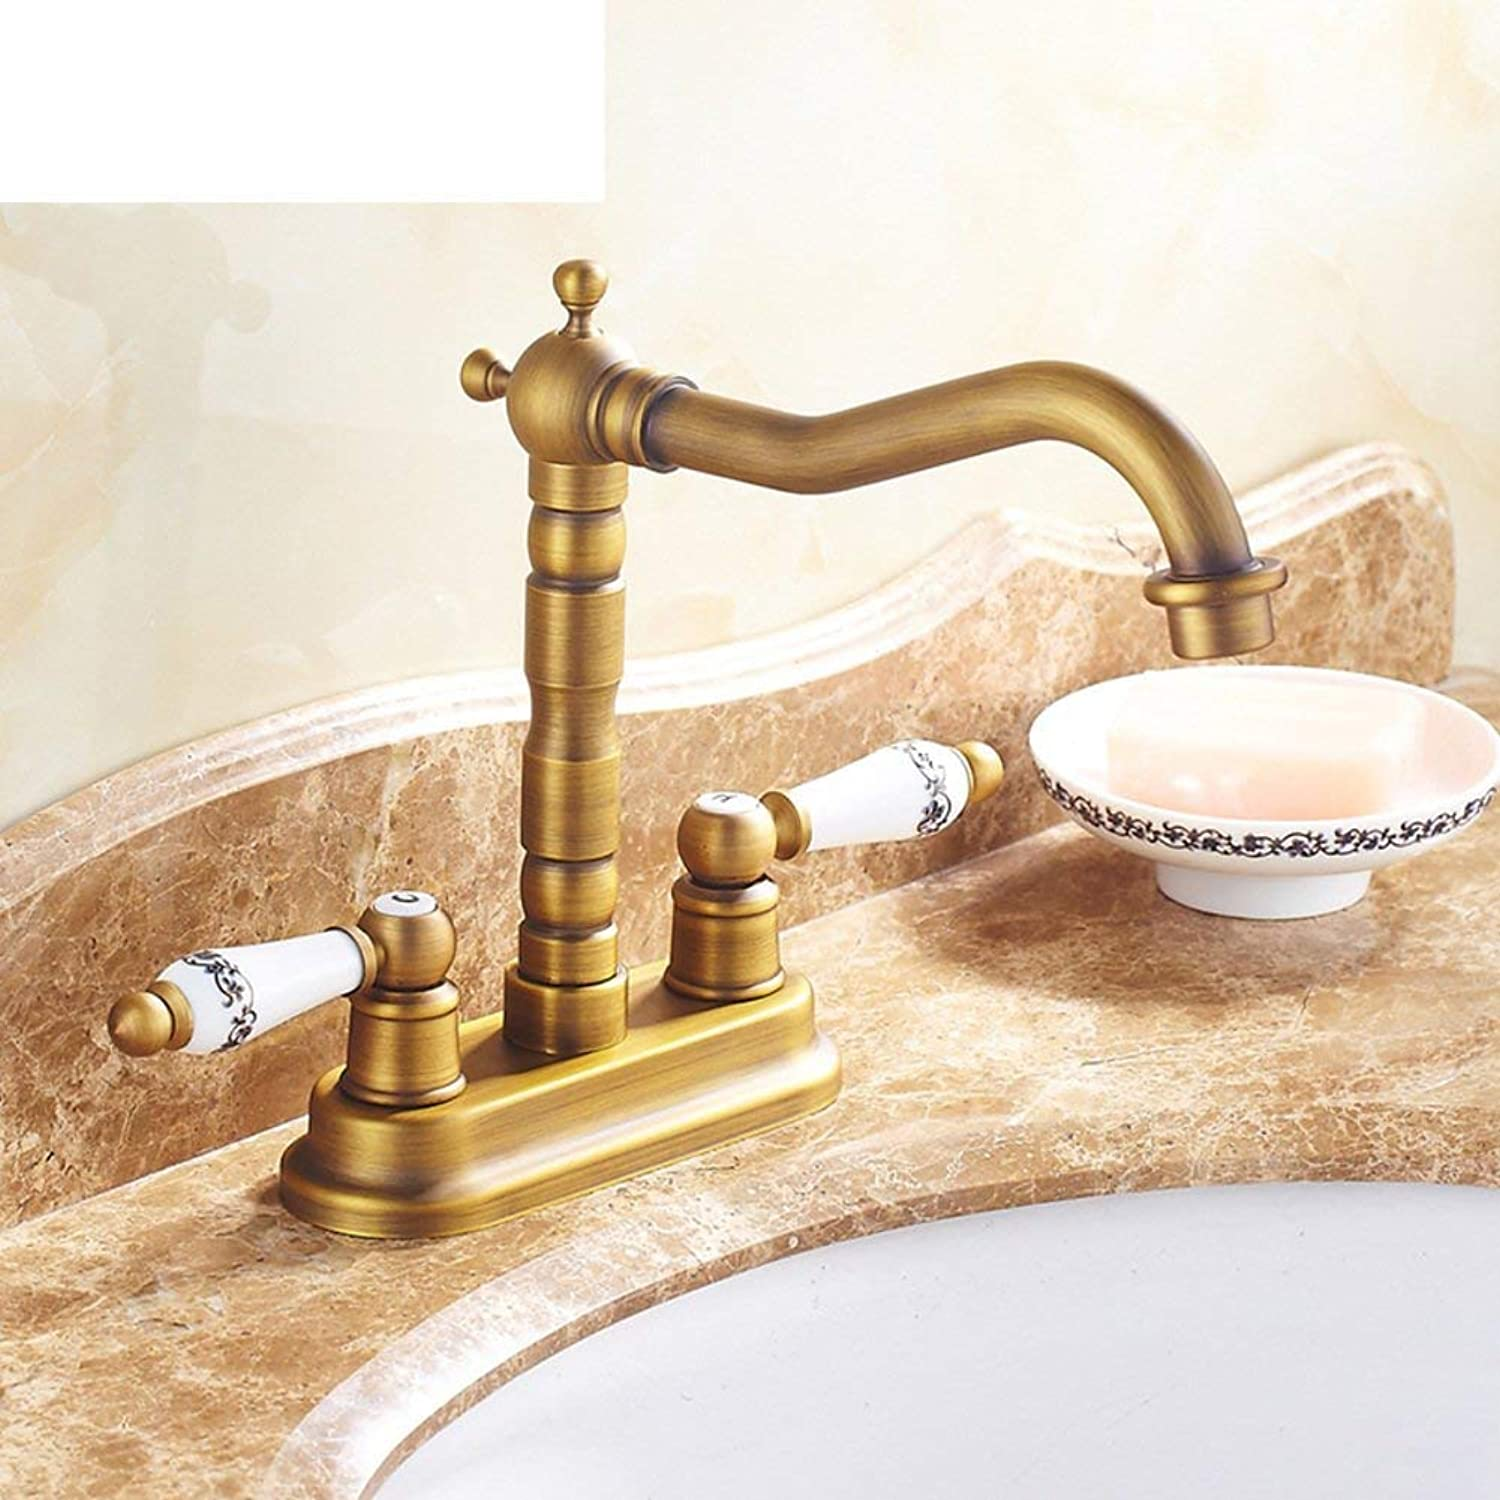 Oudan All copper gold-plated holes basin mixer European antique redatable wash basin washbasin faucet hot and cold basin-B (color   -, Size   -)